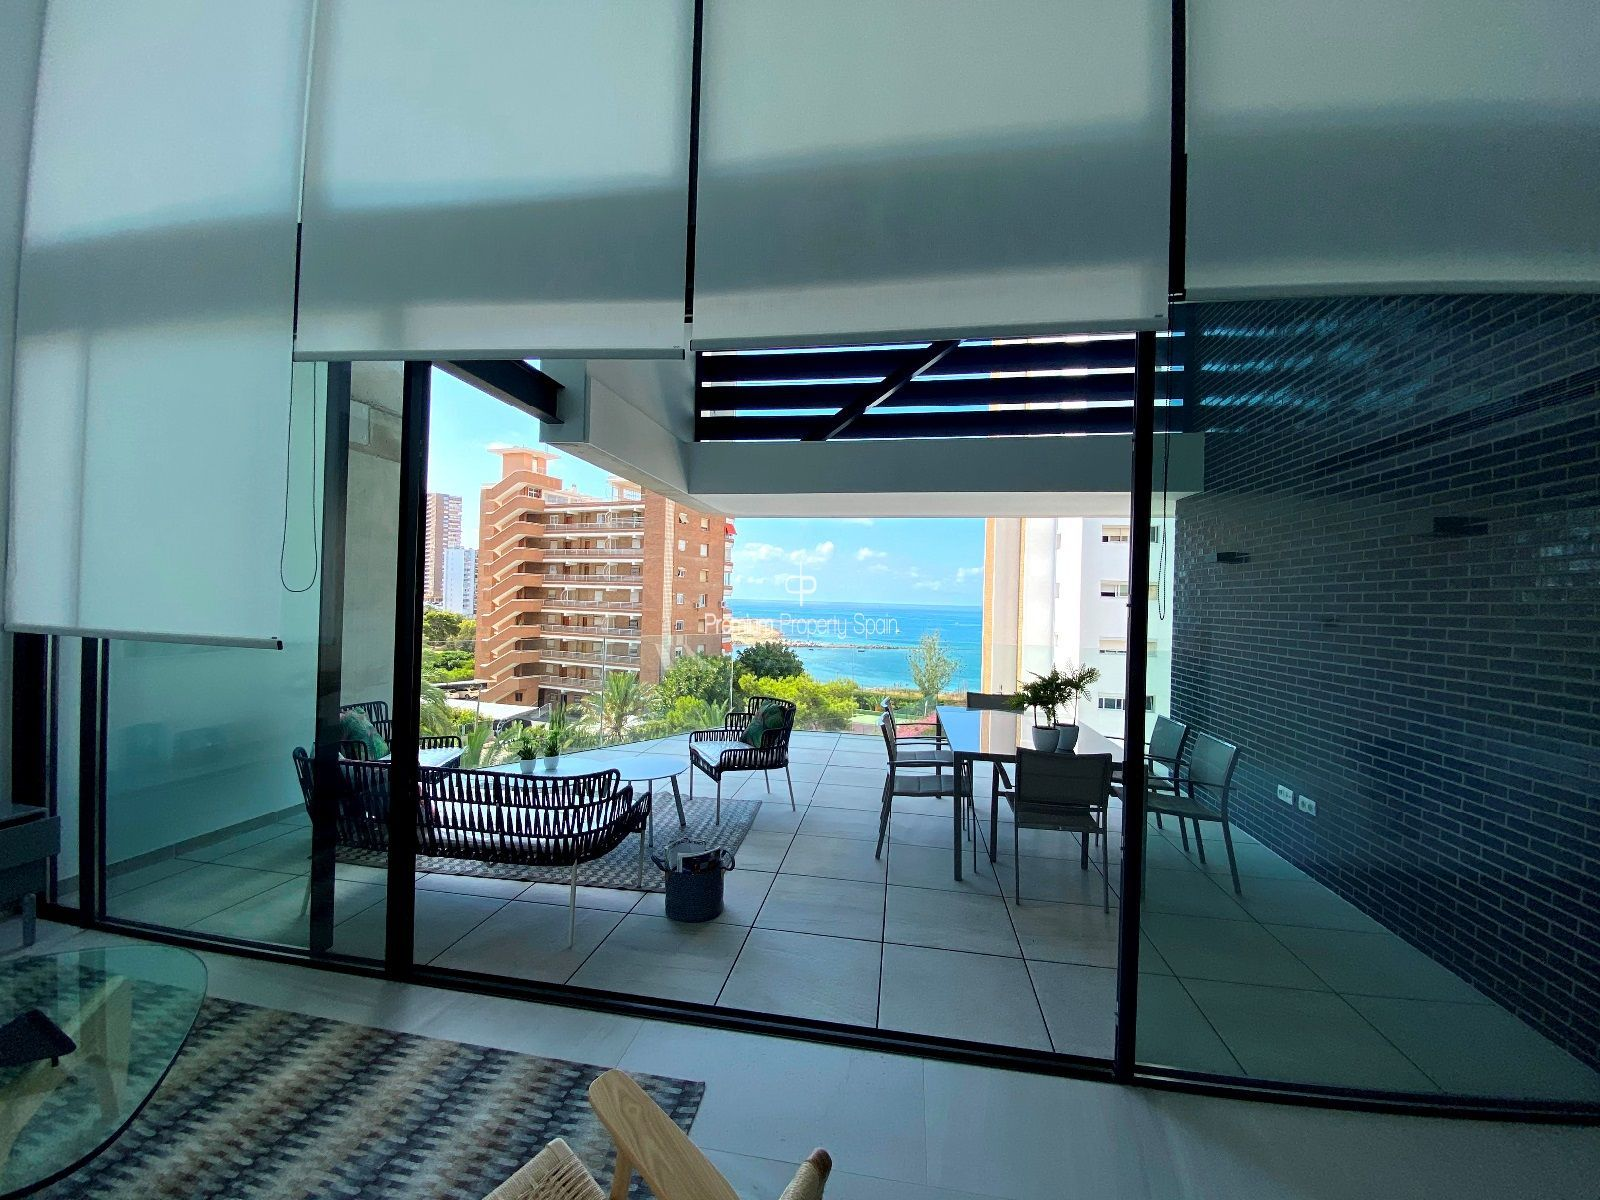 Exclusivo Edificio de Viviendas - Vistas al Mar